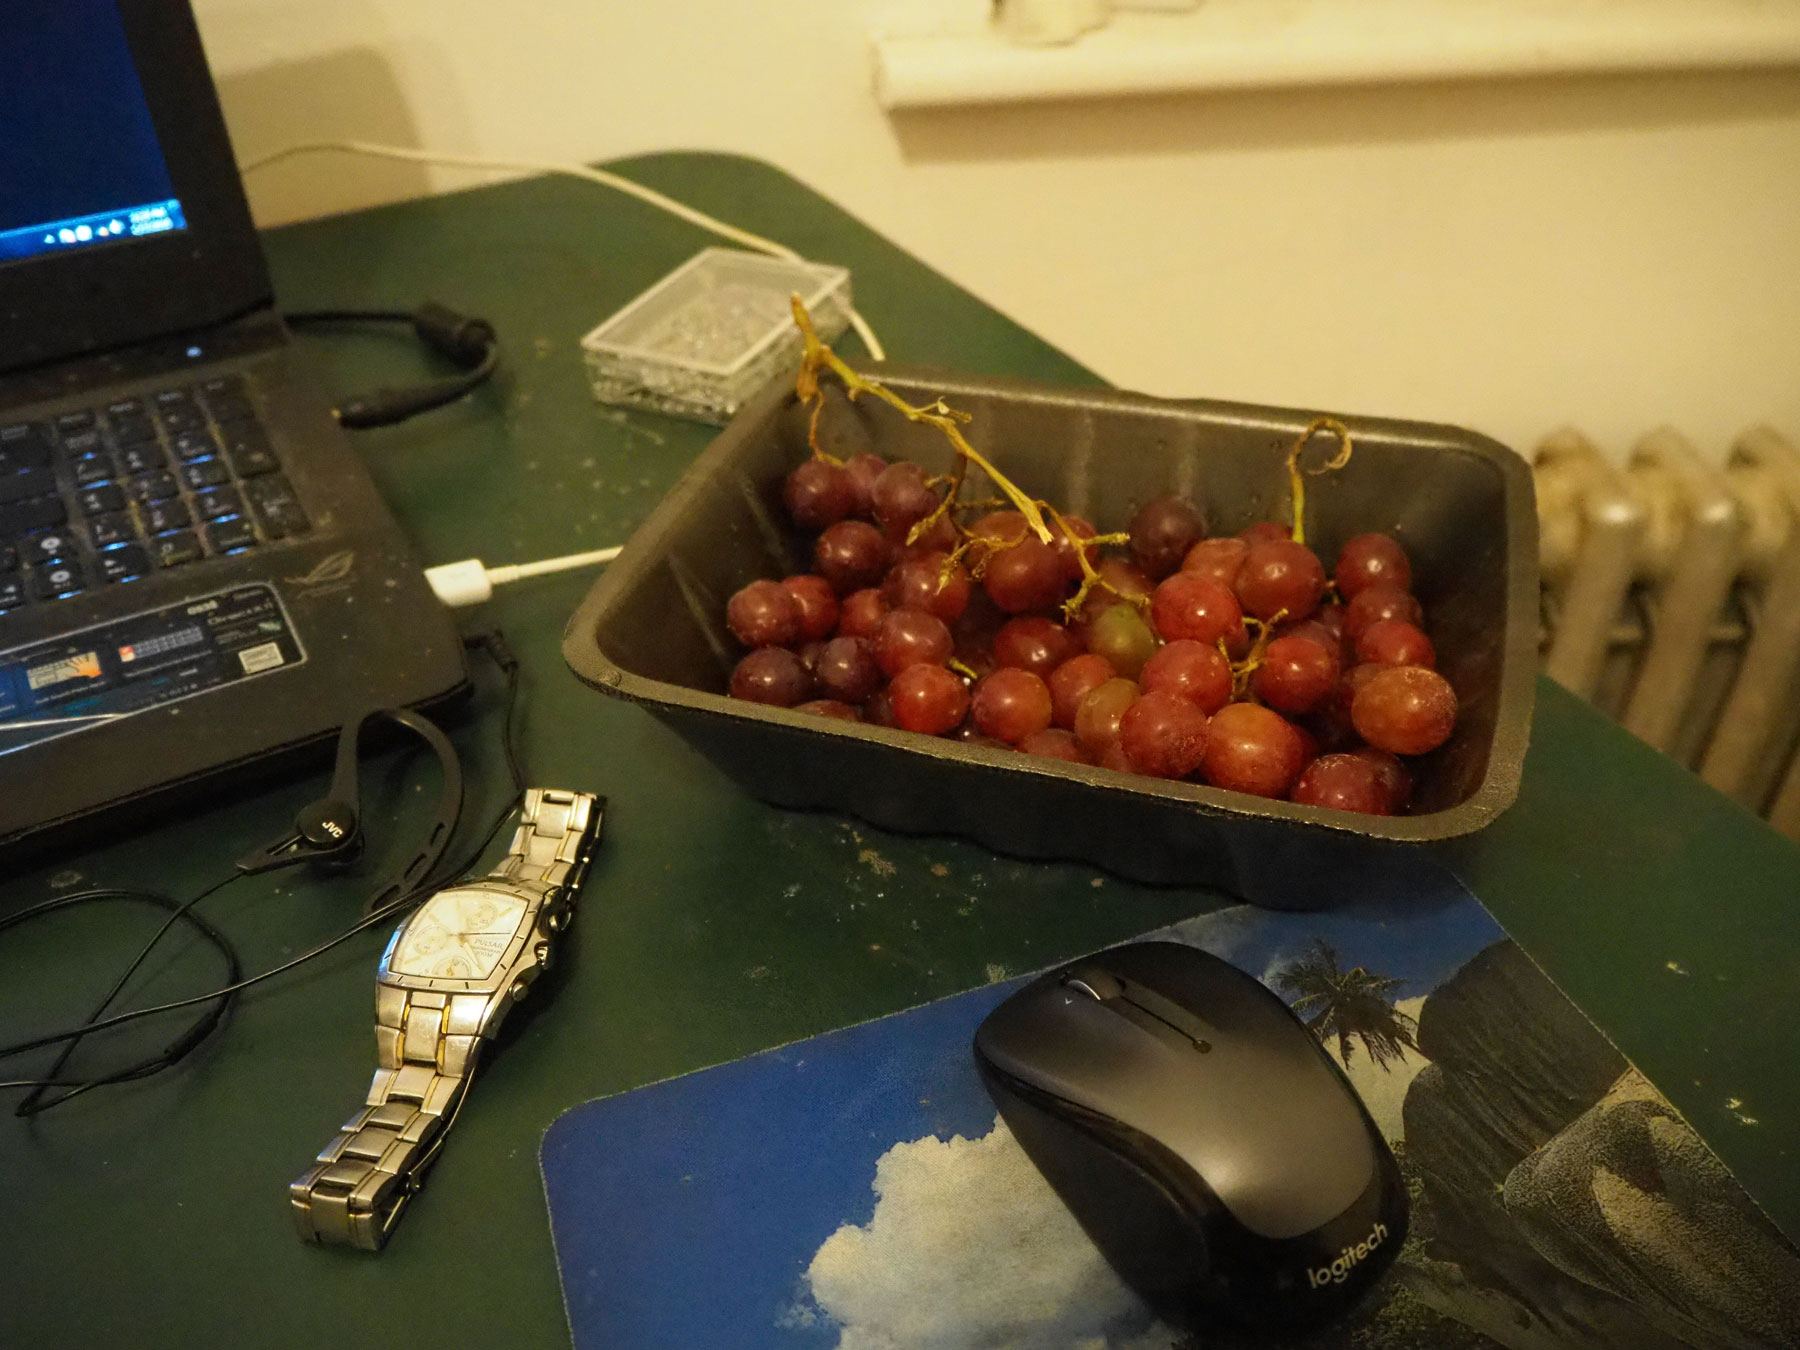 the grapes sitting on a green table in an apartment with a laptop and mouse